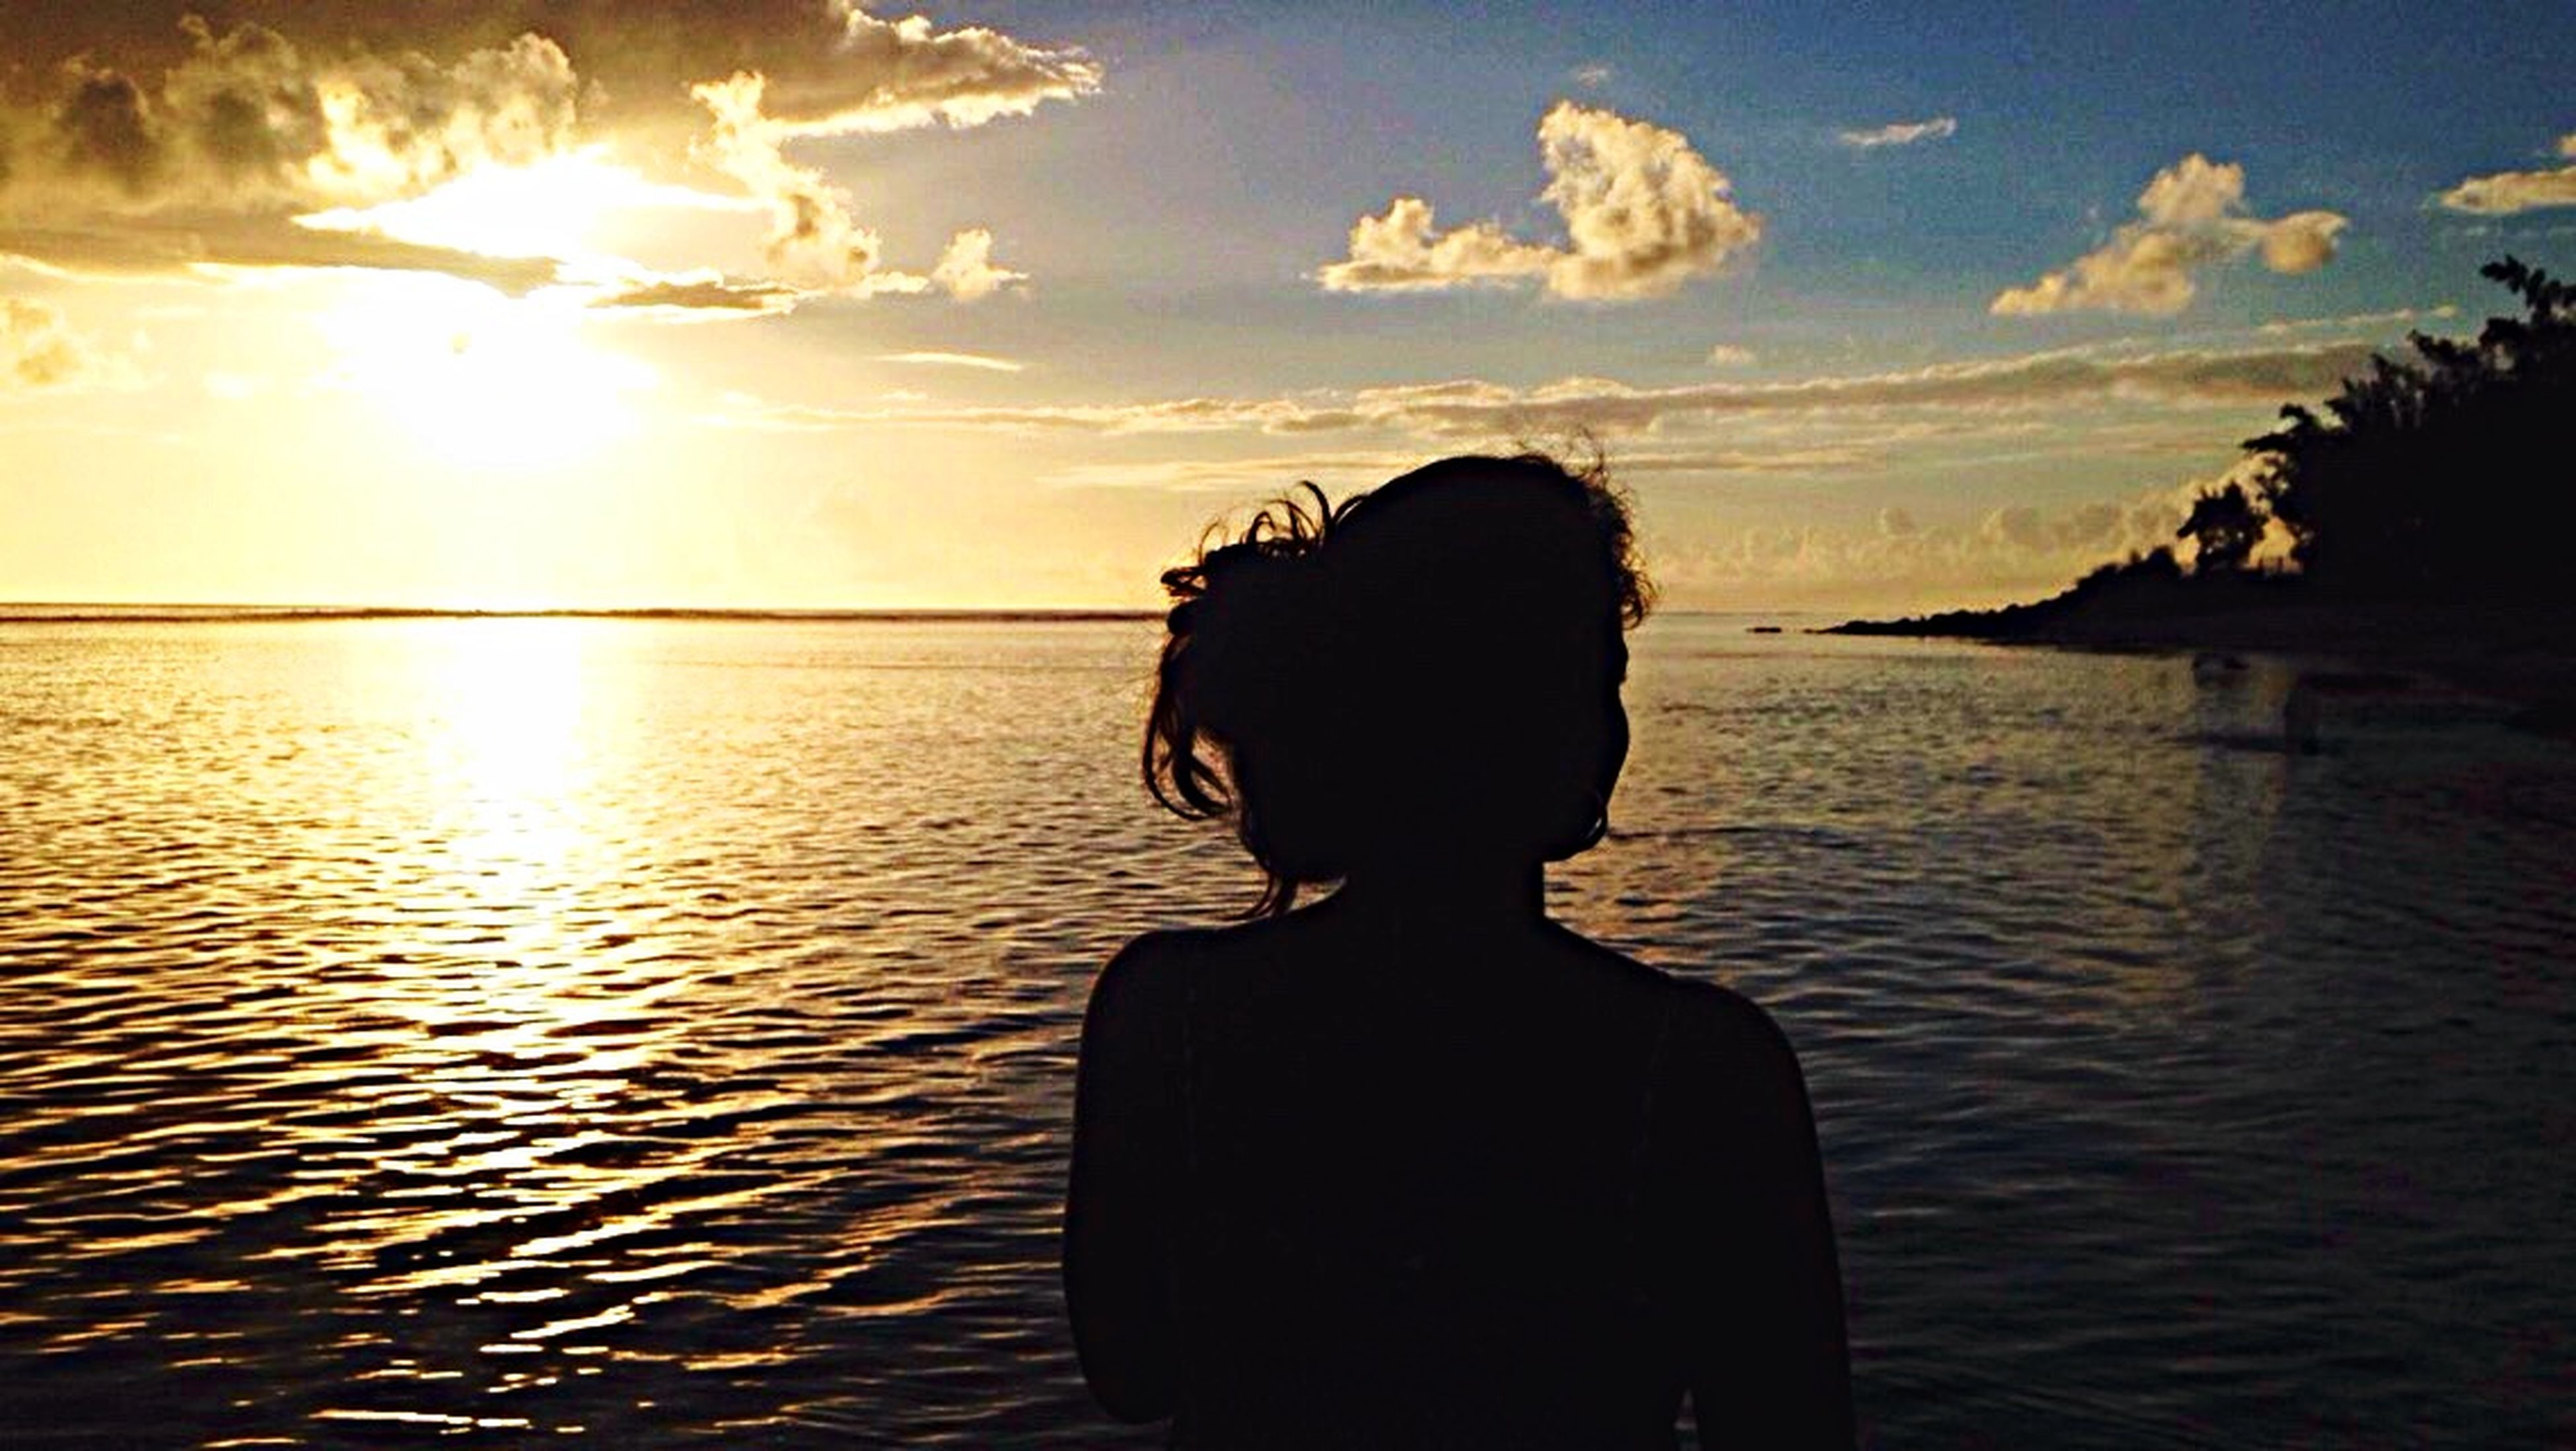 water, sunset, lifestyles, standing, silhouette, sea, rear view, sky, leisure activity, sun, tranquility, person, scenics, three quarter length, tranquil scene, beauty in nature, waist up, nature